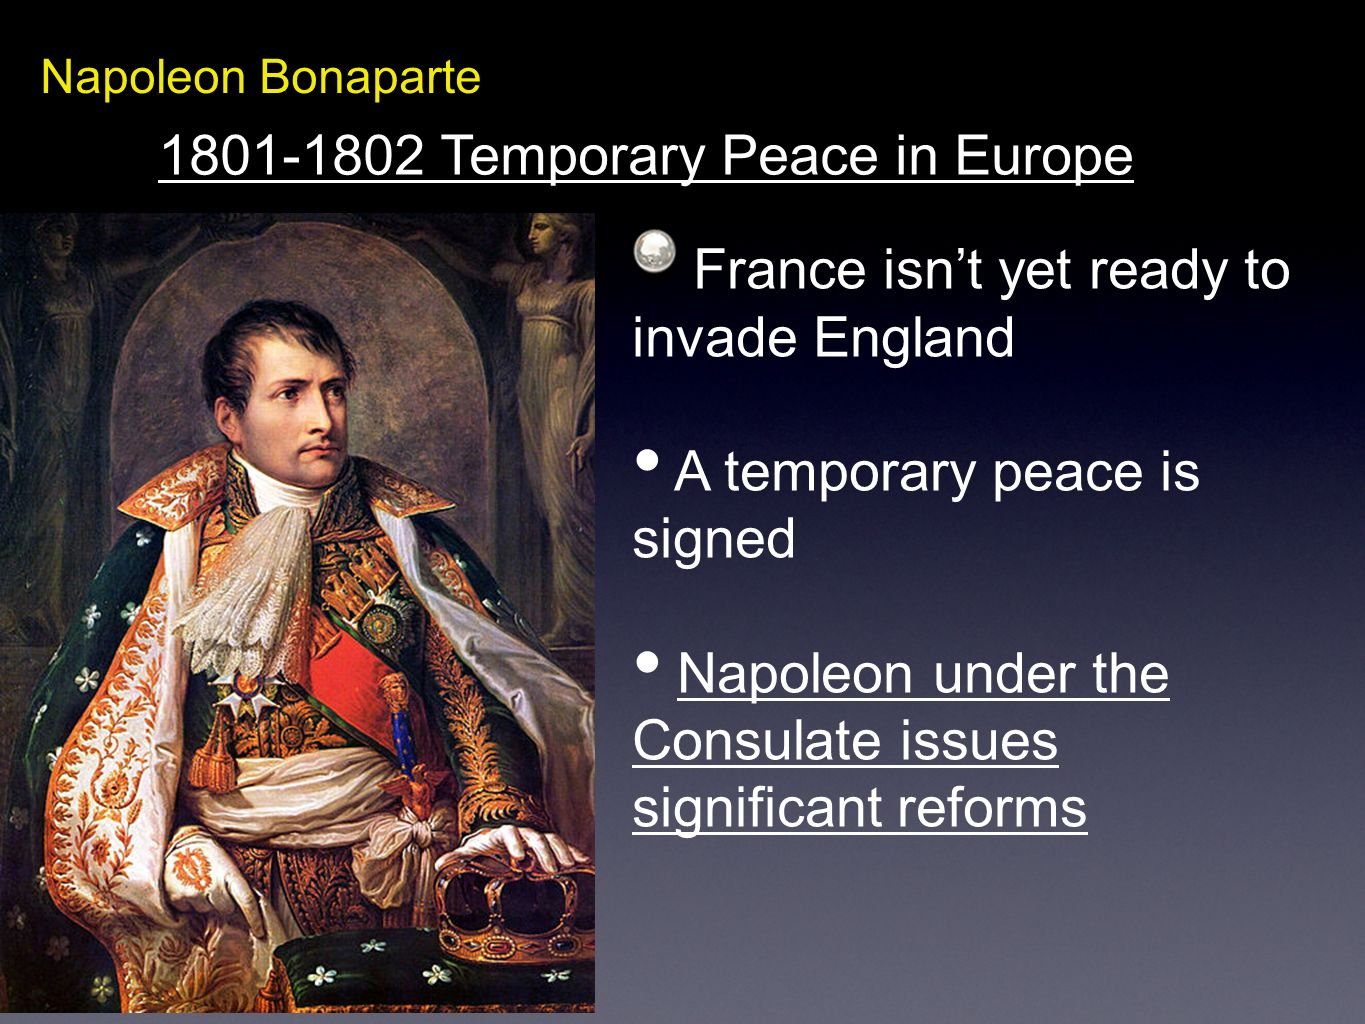 1801-1802 Temporary Peace in Europe